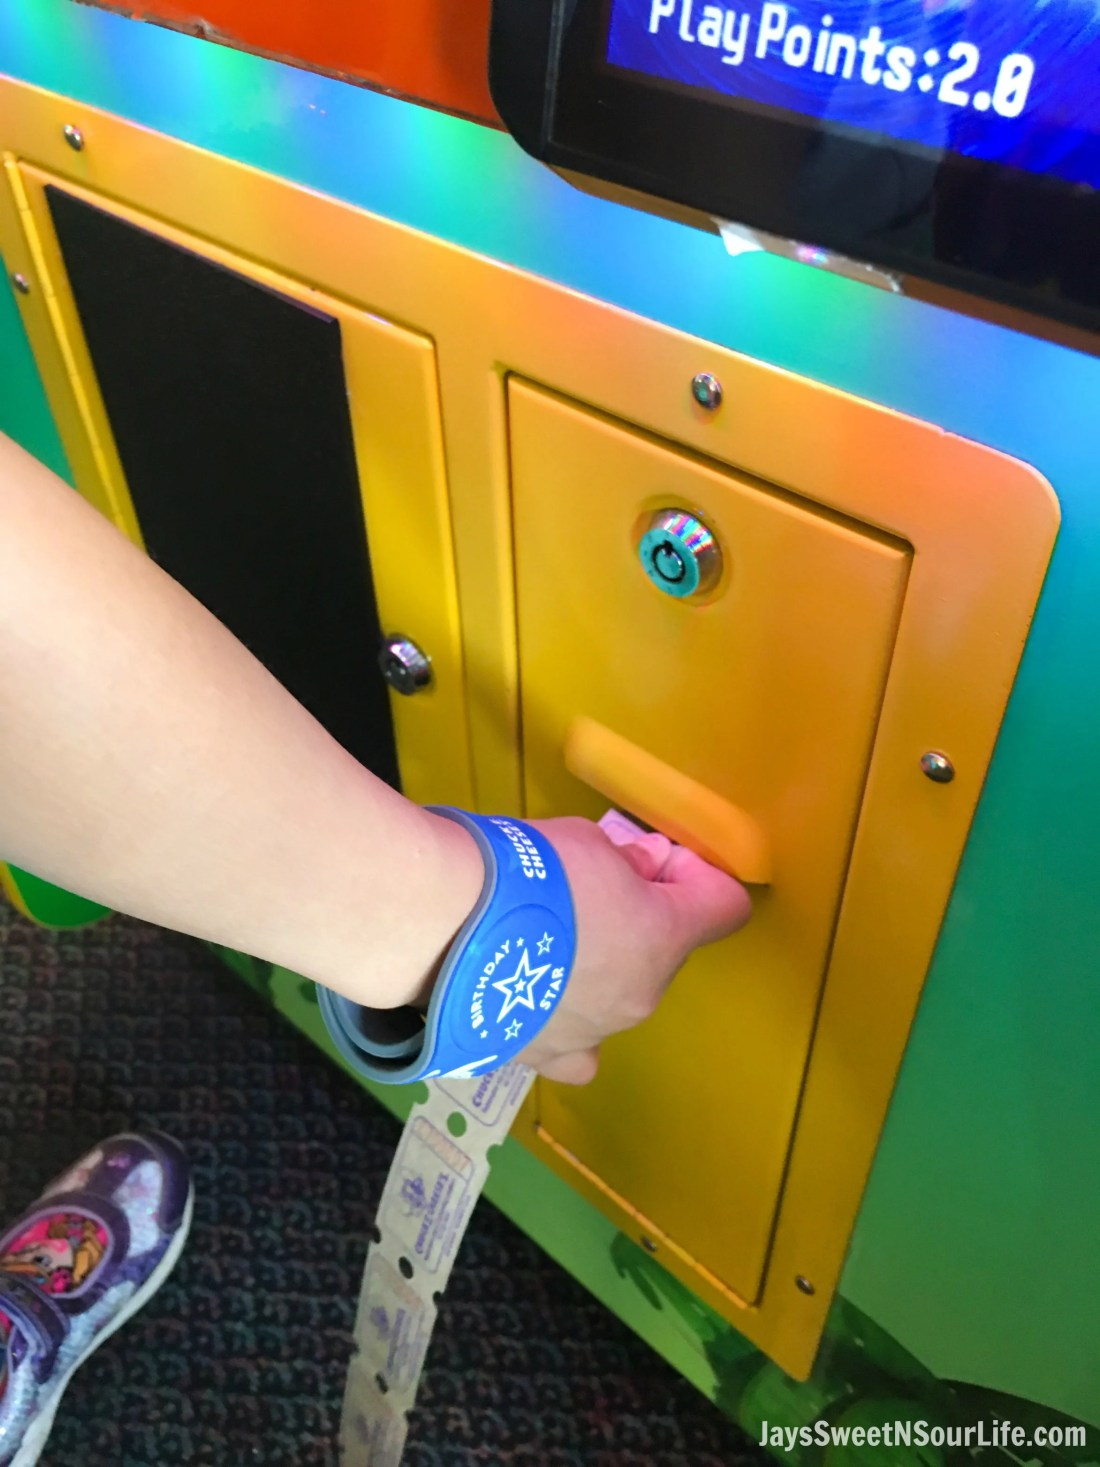 Chuck e cheeses VIP birthday Party Tickets and birthday star customized wristband. Book your party today and have guests enjoy 2 hours of unlimited game play.